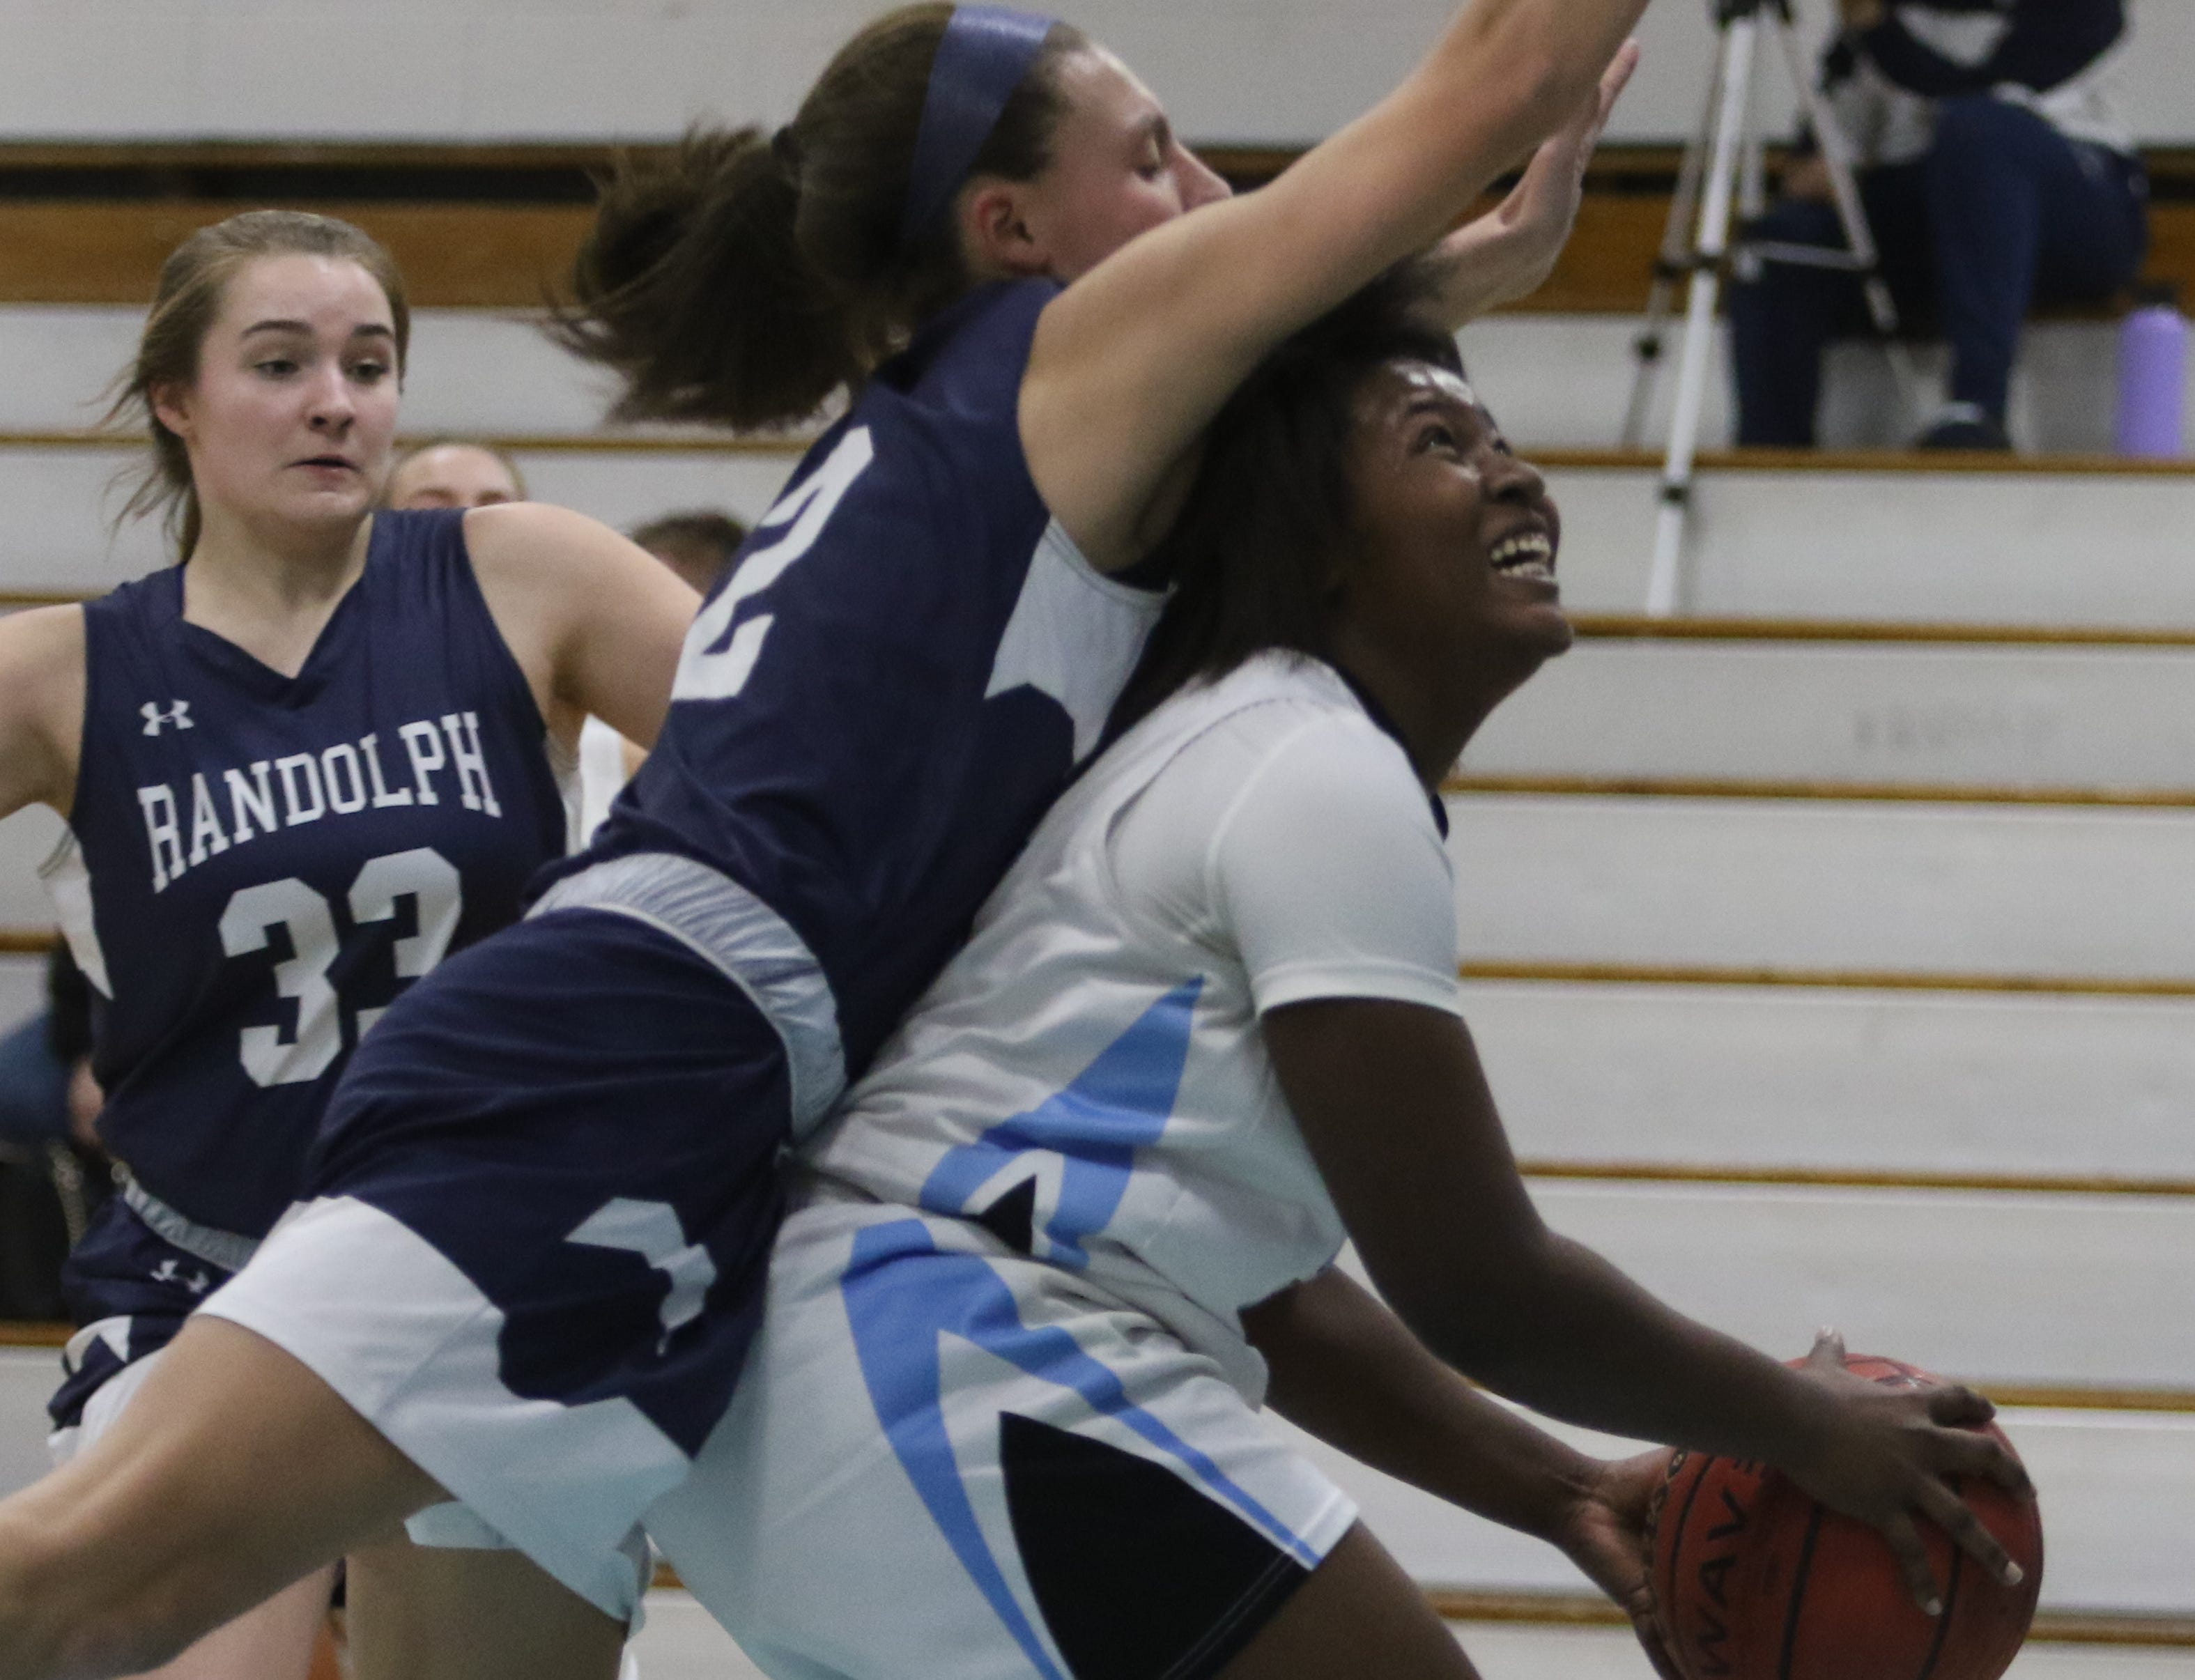 Alyssa Alfieri of Randolph fouls Nadriah Freeman of Parsippany Hills on the this second half play.